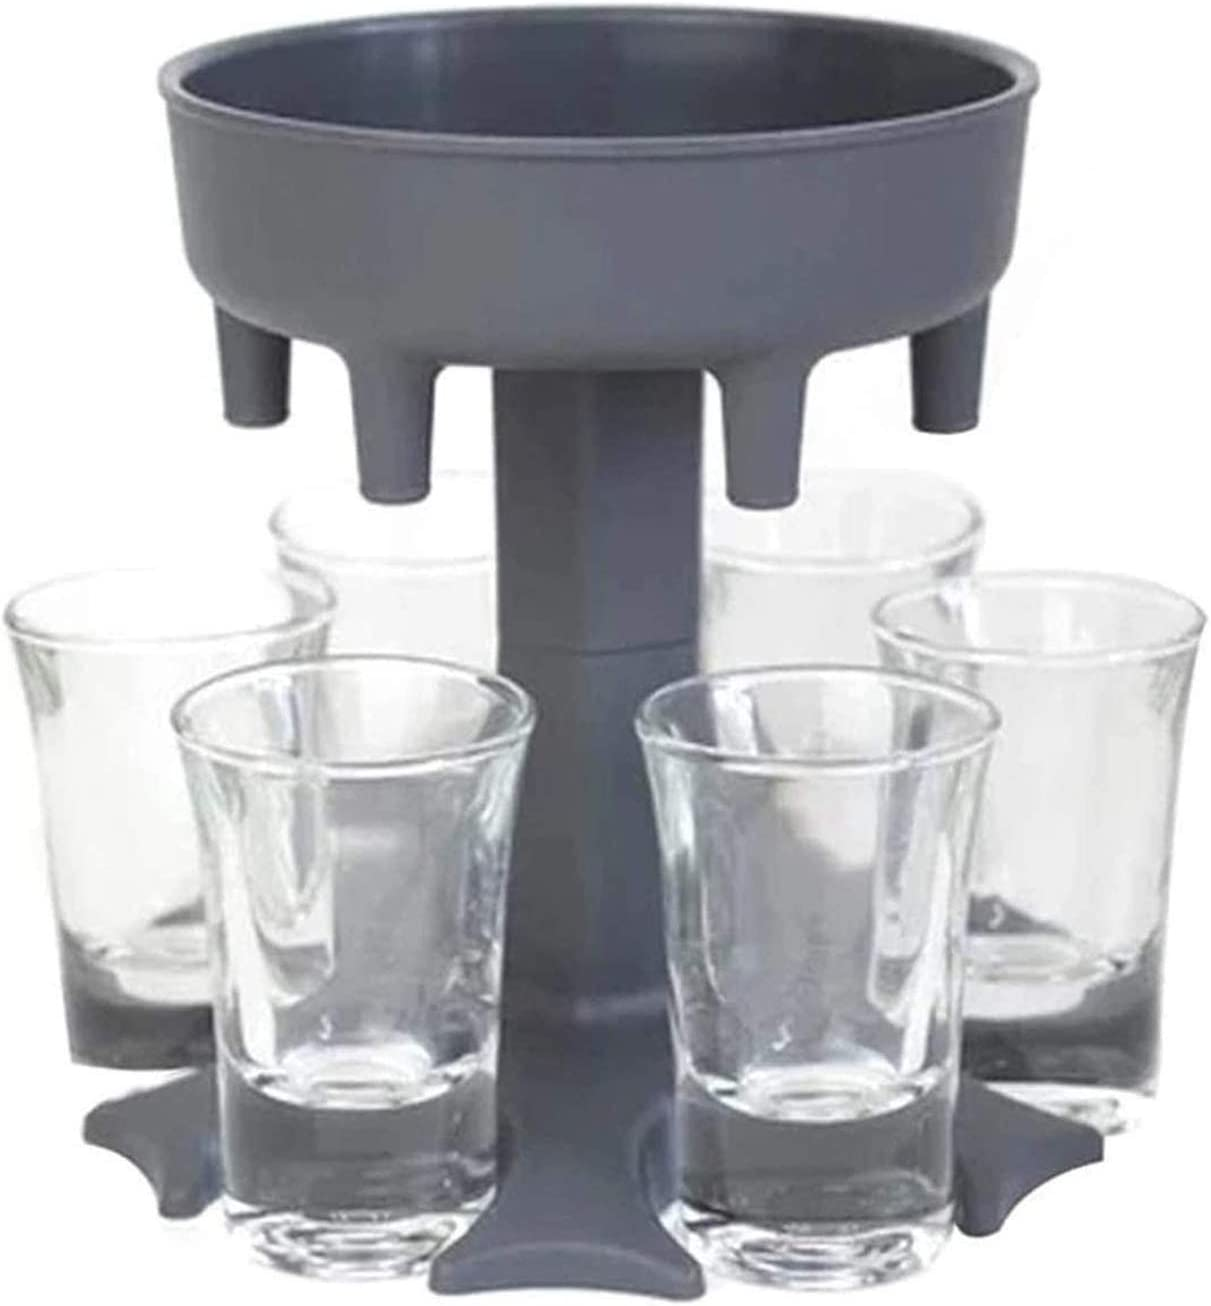 Trmbacy 6 Shot Glass Dispenser Holder Liquor Dispenser Party Beverage Drinking Games Bar Cocktail Wine Quick Filling Tool (With 6 small glasses)